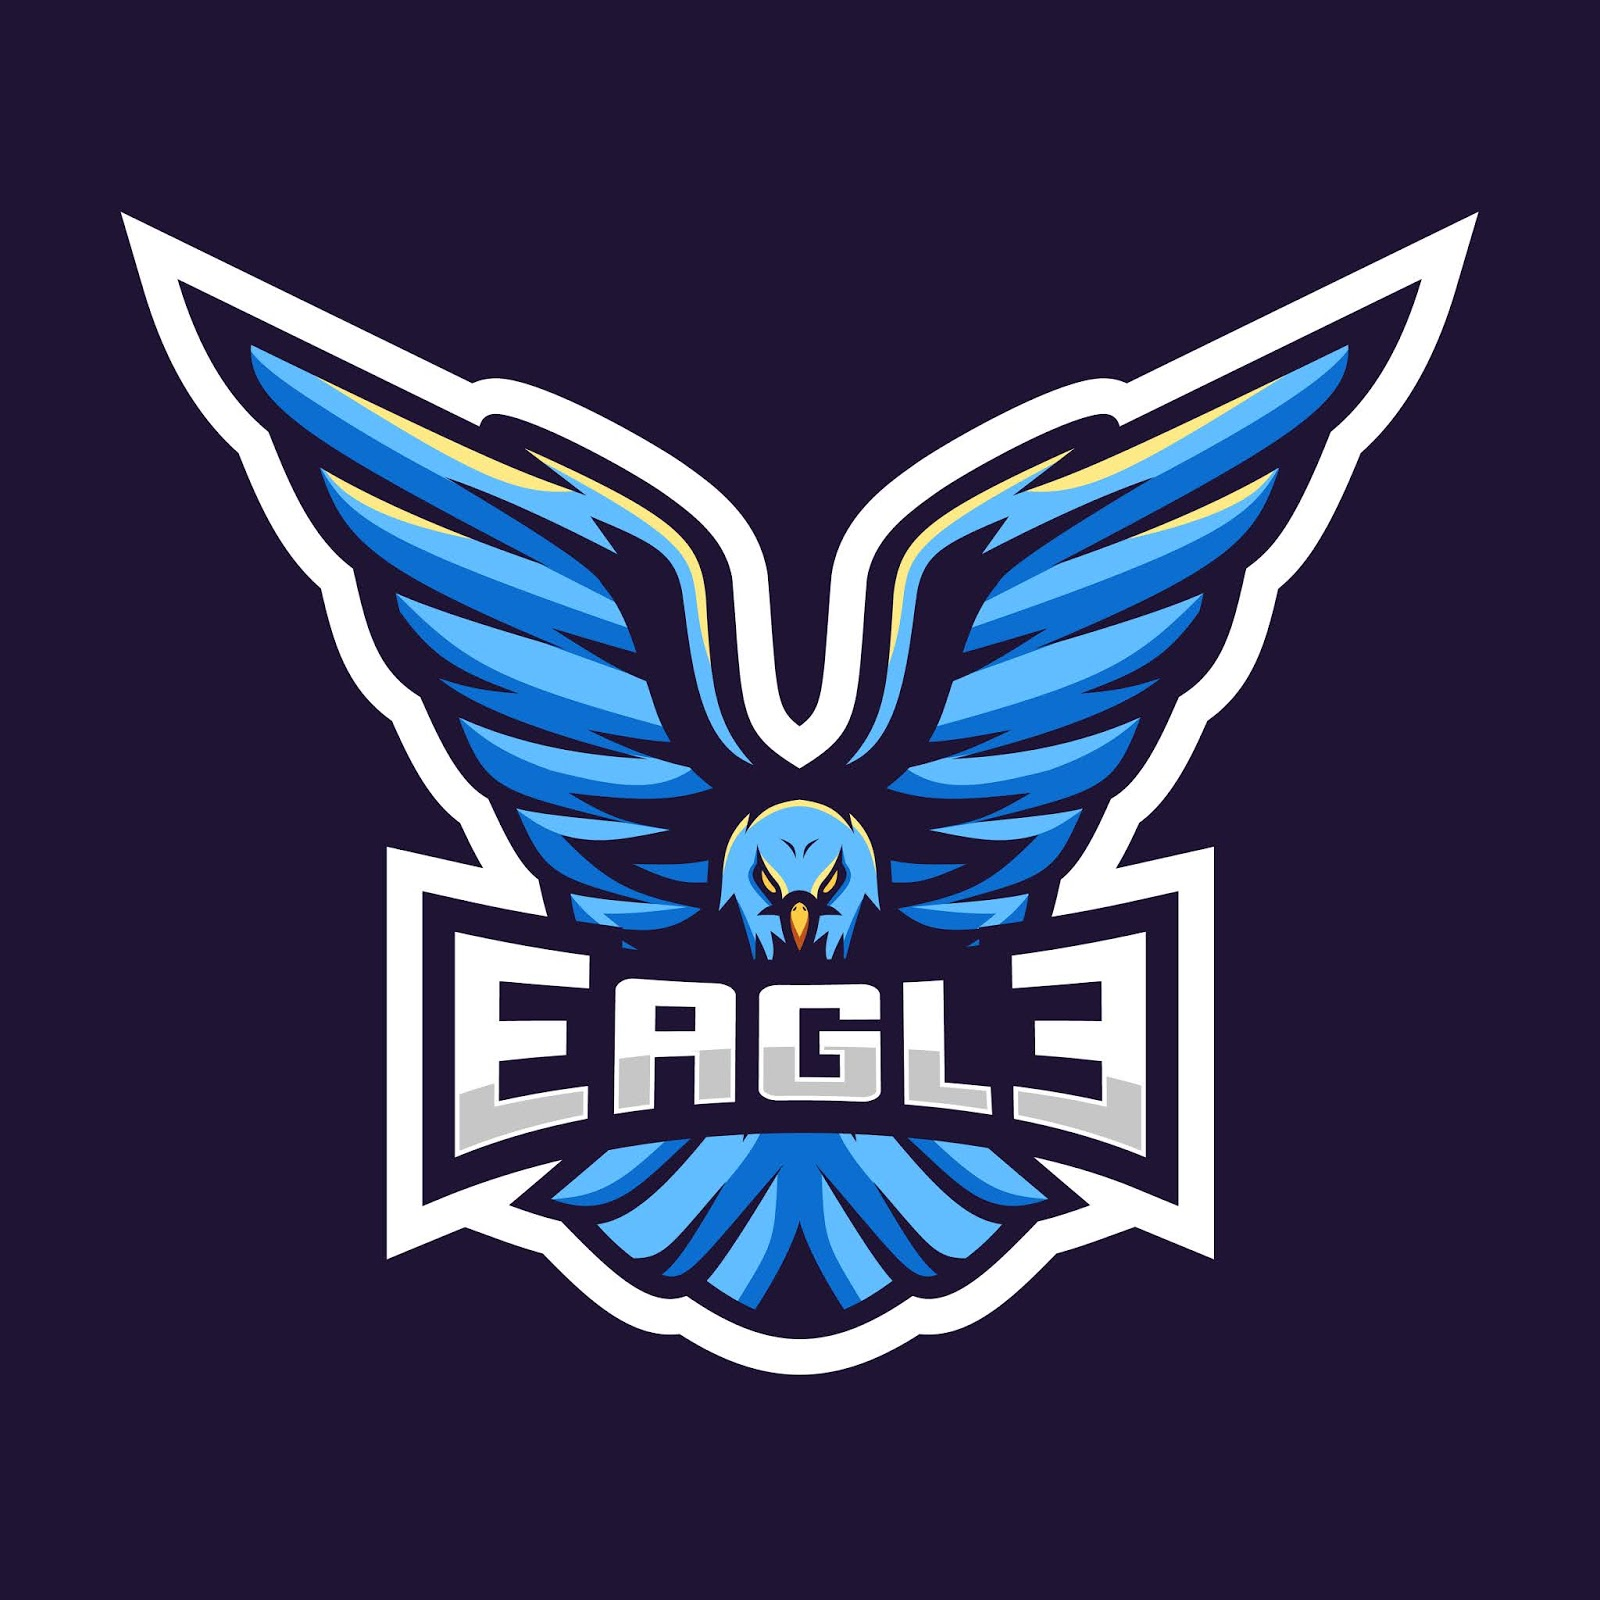 Eagle Esport Logo Illustration Awesome Free Download Vector CDR, AI, EPS and PNG Formats